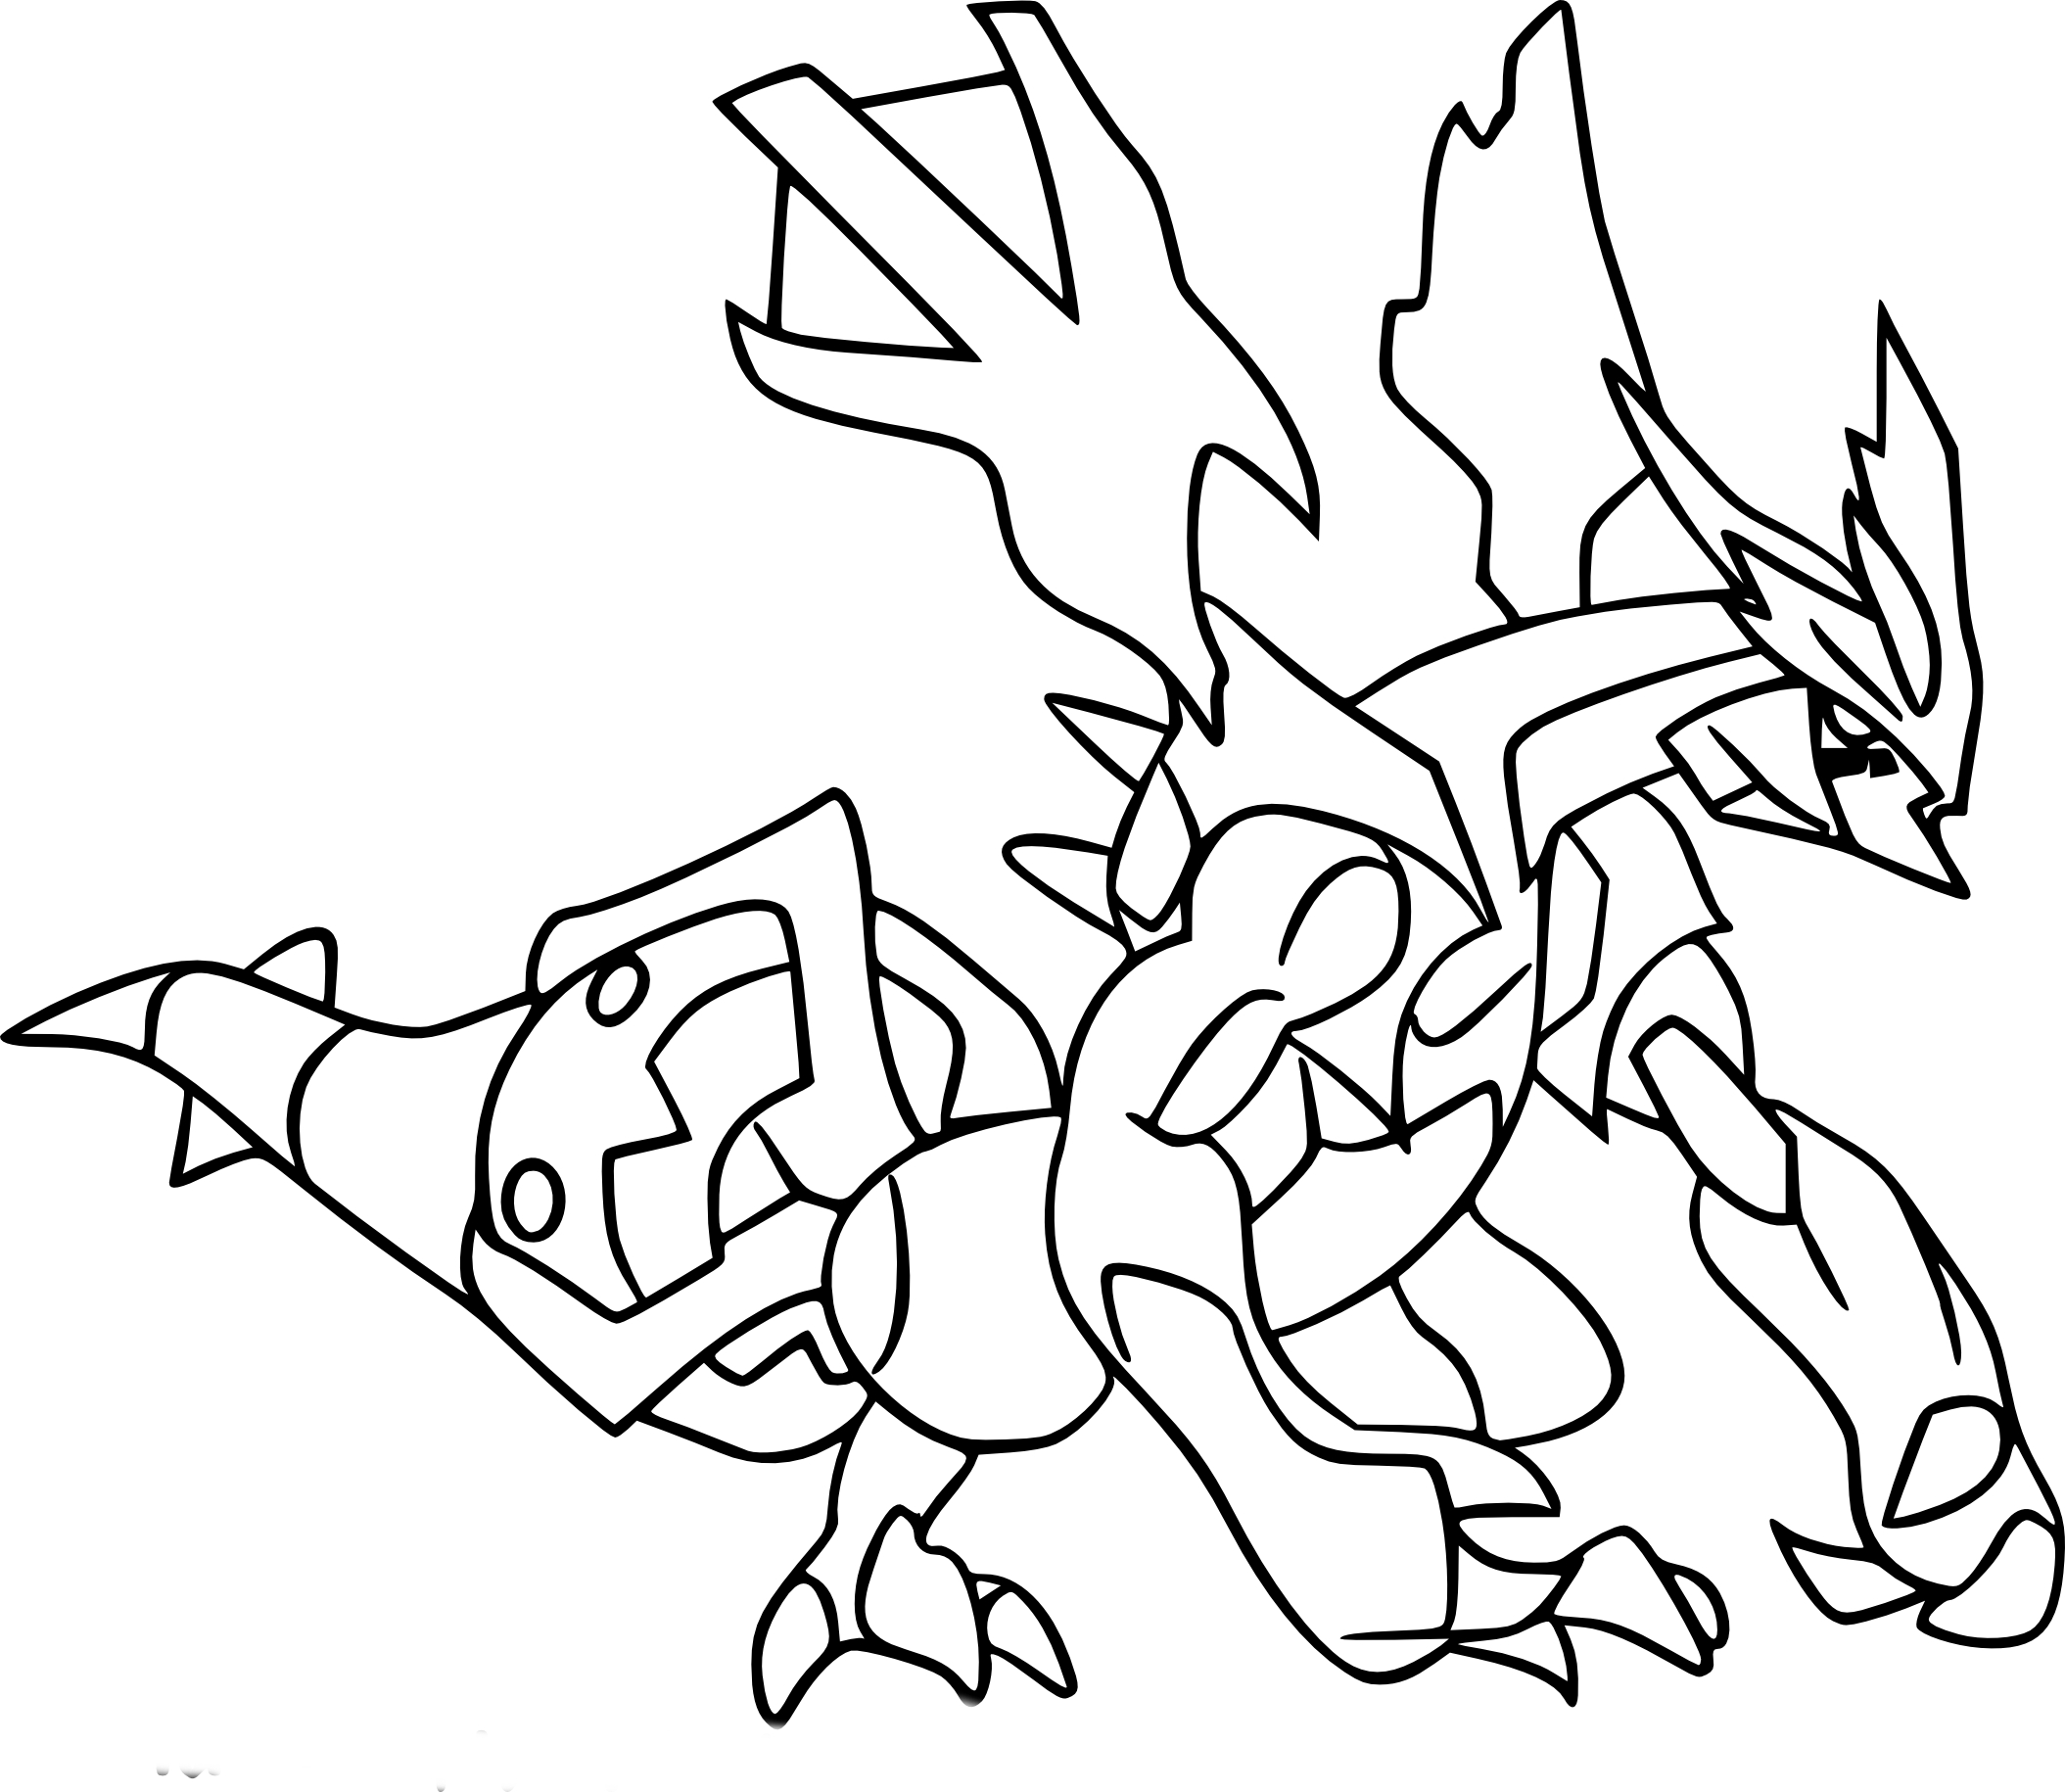 all pokemon coloring pages all pokemon coloring pages free printable all pokemon pages coloring pokemon all